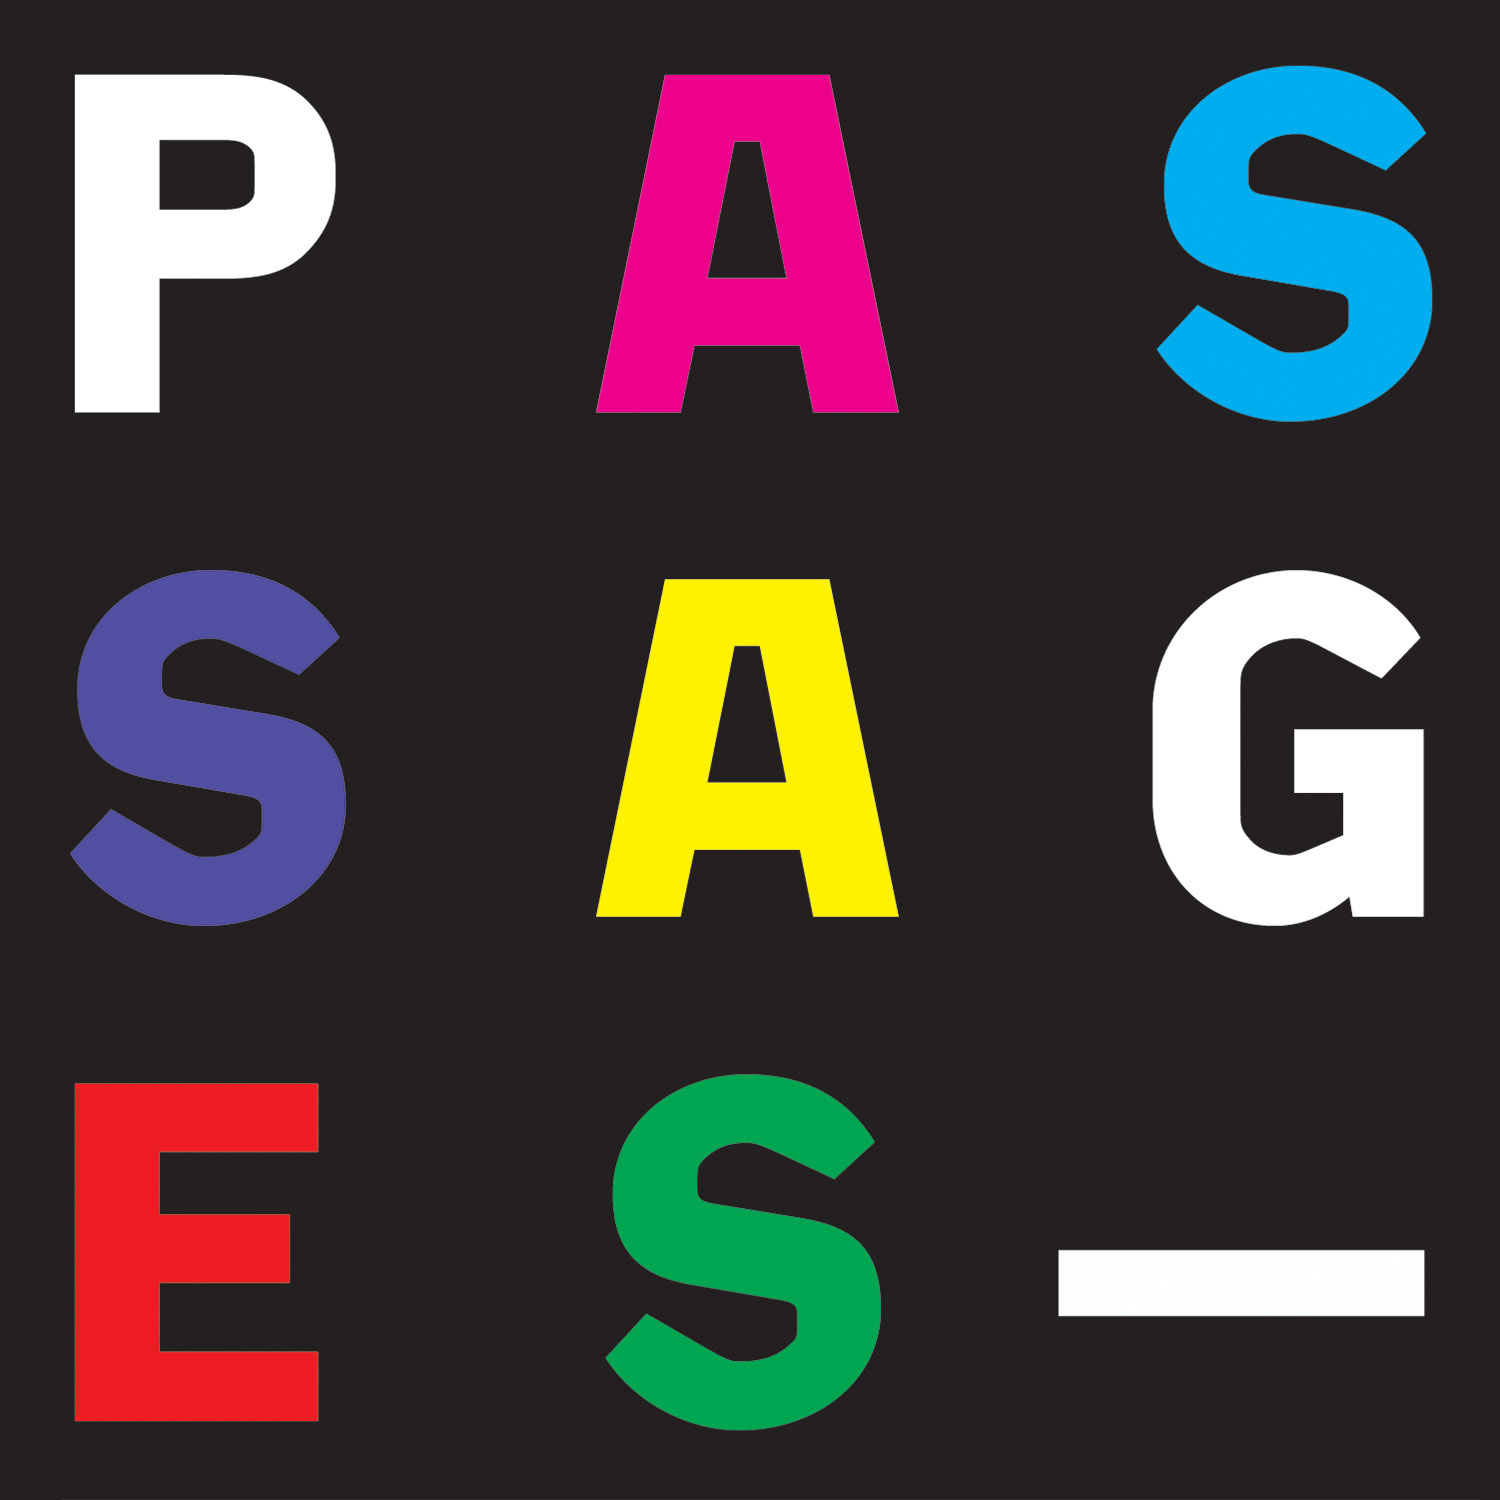 Passages—artists/directions/intersections